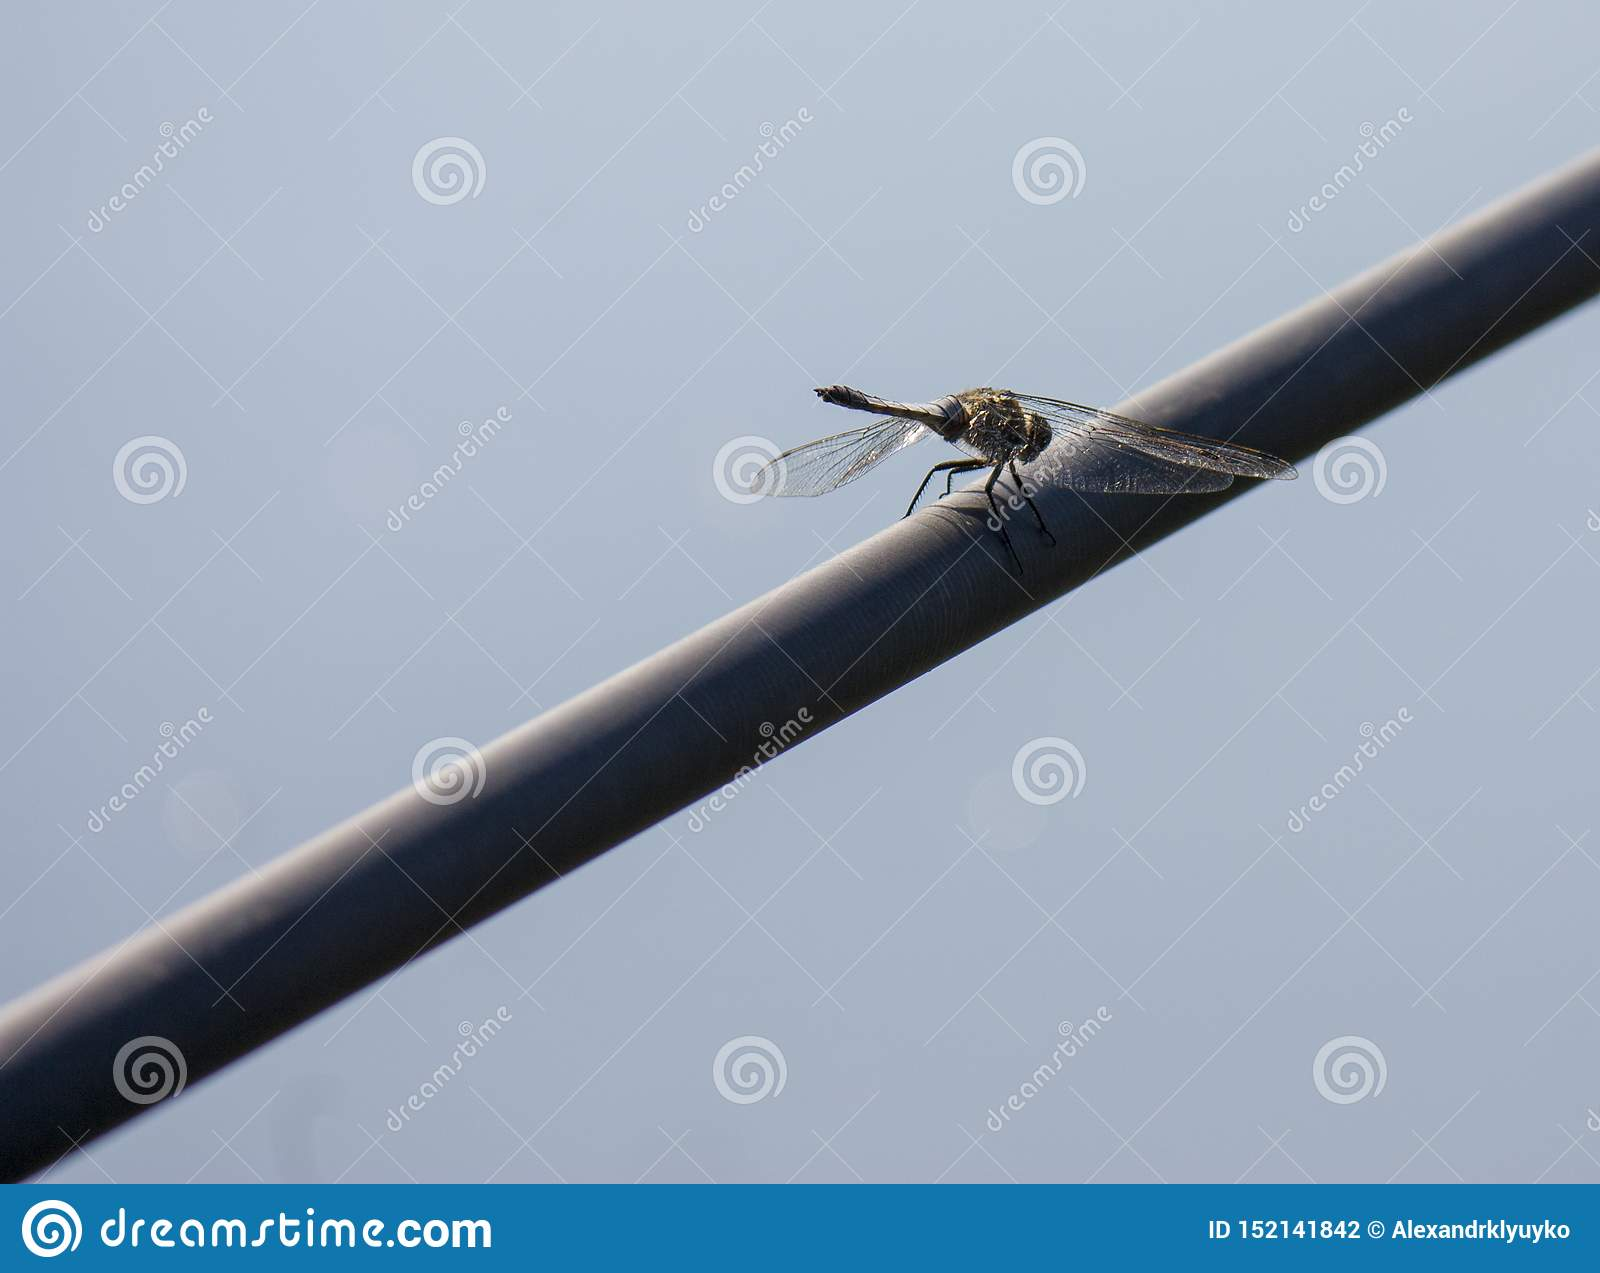 Dragonfly in nature. Close-up of Dragonfly in its natural habitat. Beautiful vintage nature scene with dragonfly outdoor